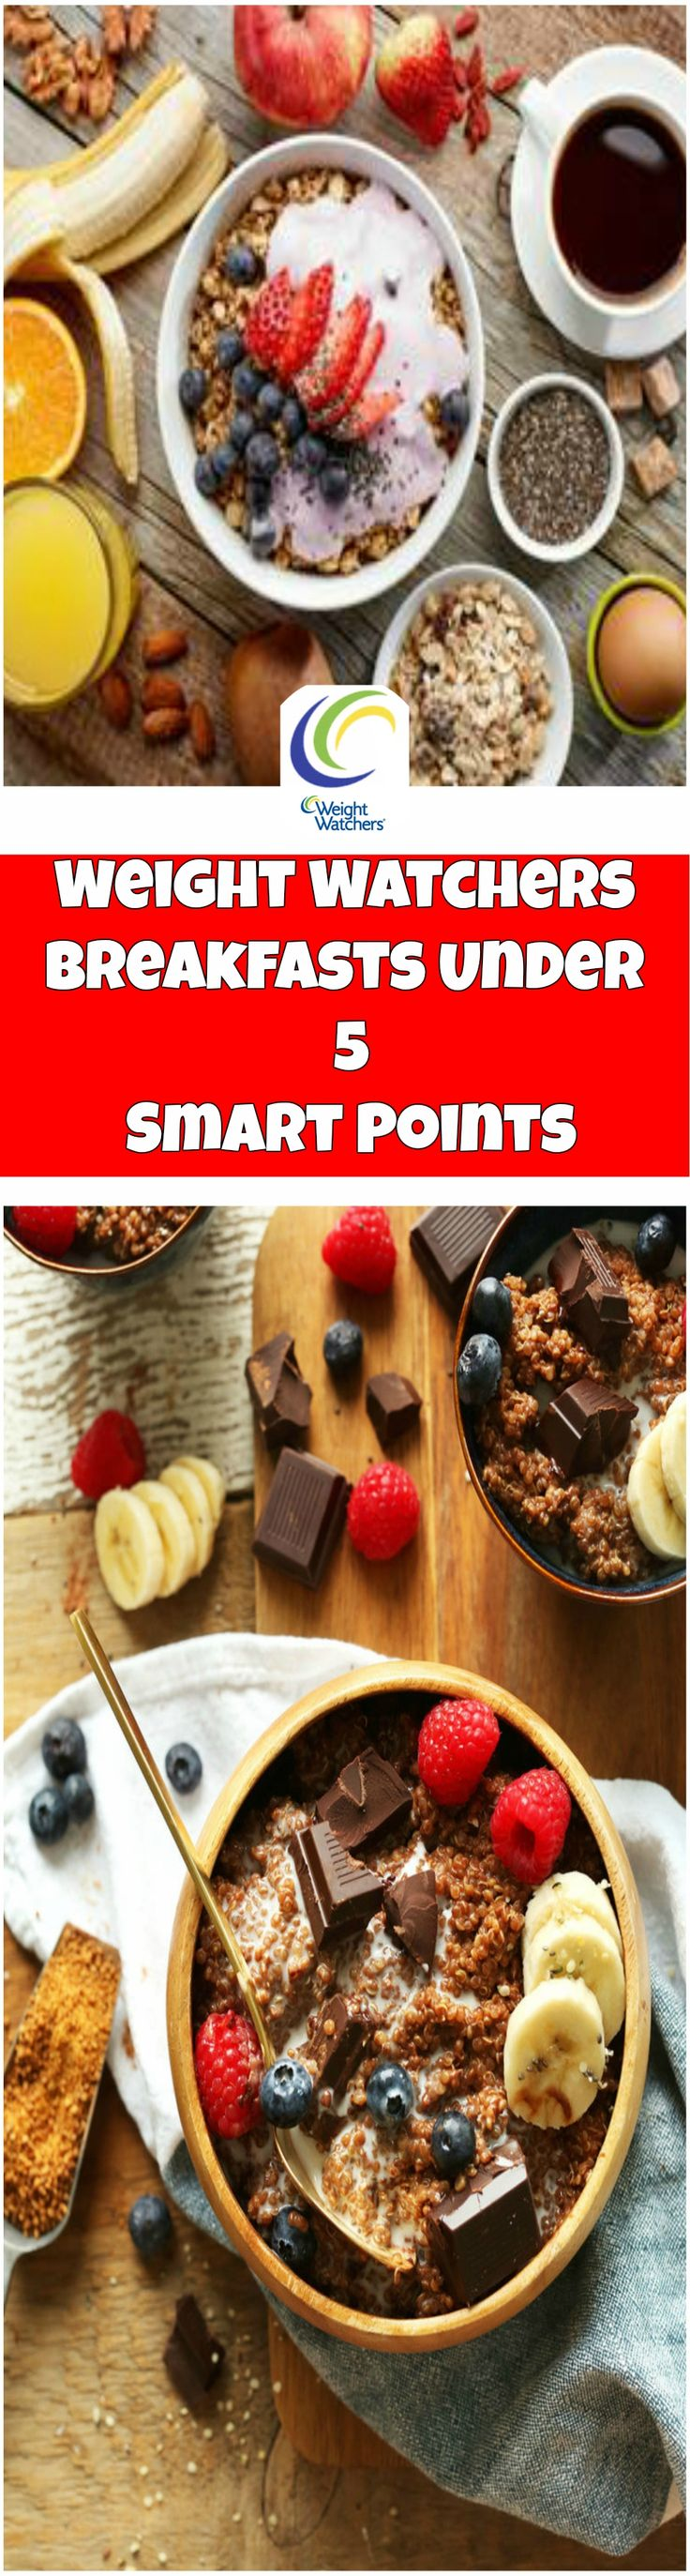 Weight Watchers Breakfasts Under 5 Smart Points  weight watchers recipes with points breakfast lunches, mornings, eggs, oatmeal, easy, weekly meal plans, snacks, dinners, muffins, smoothie, desserts, overnight oats, website, clean eating, french toast,